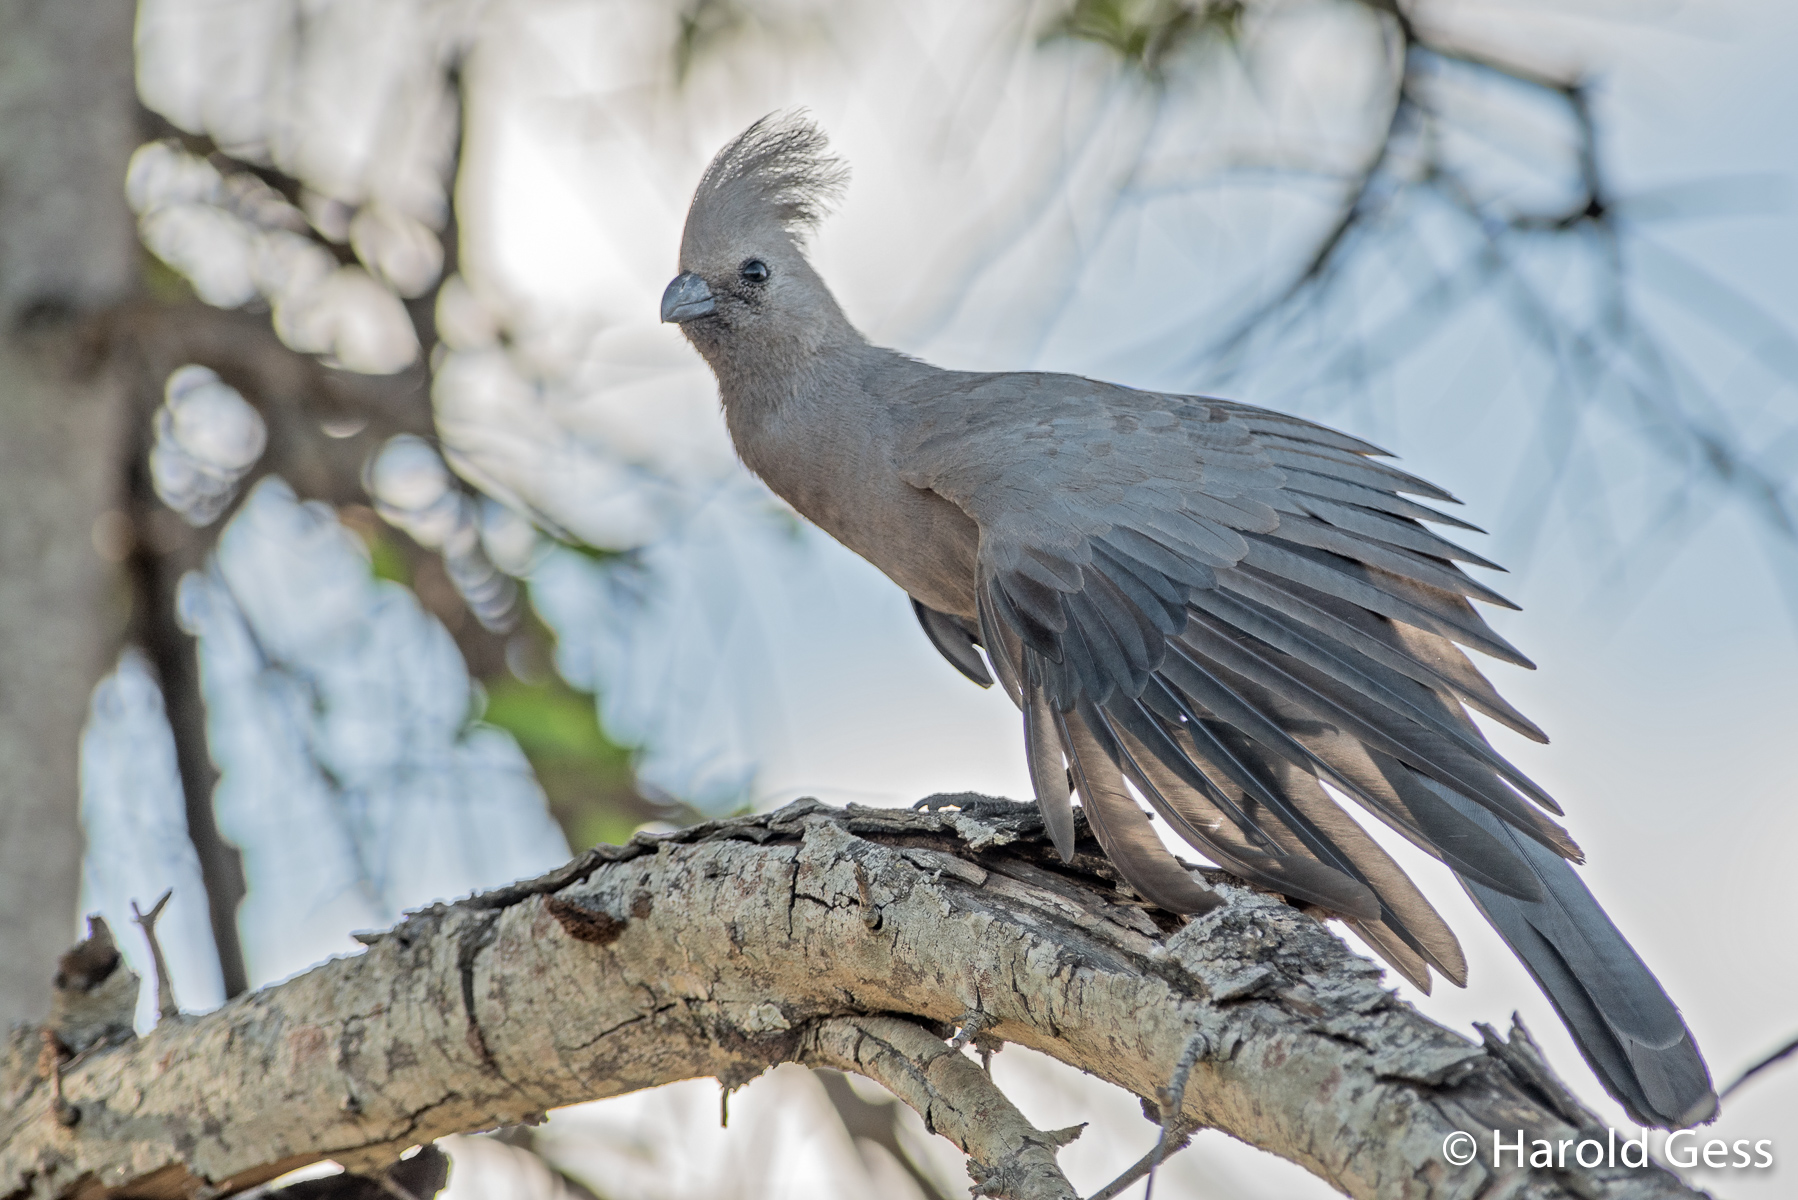 Grey Go-away-bird, Corythaixoides concolor, Leeupoort, Limpopo